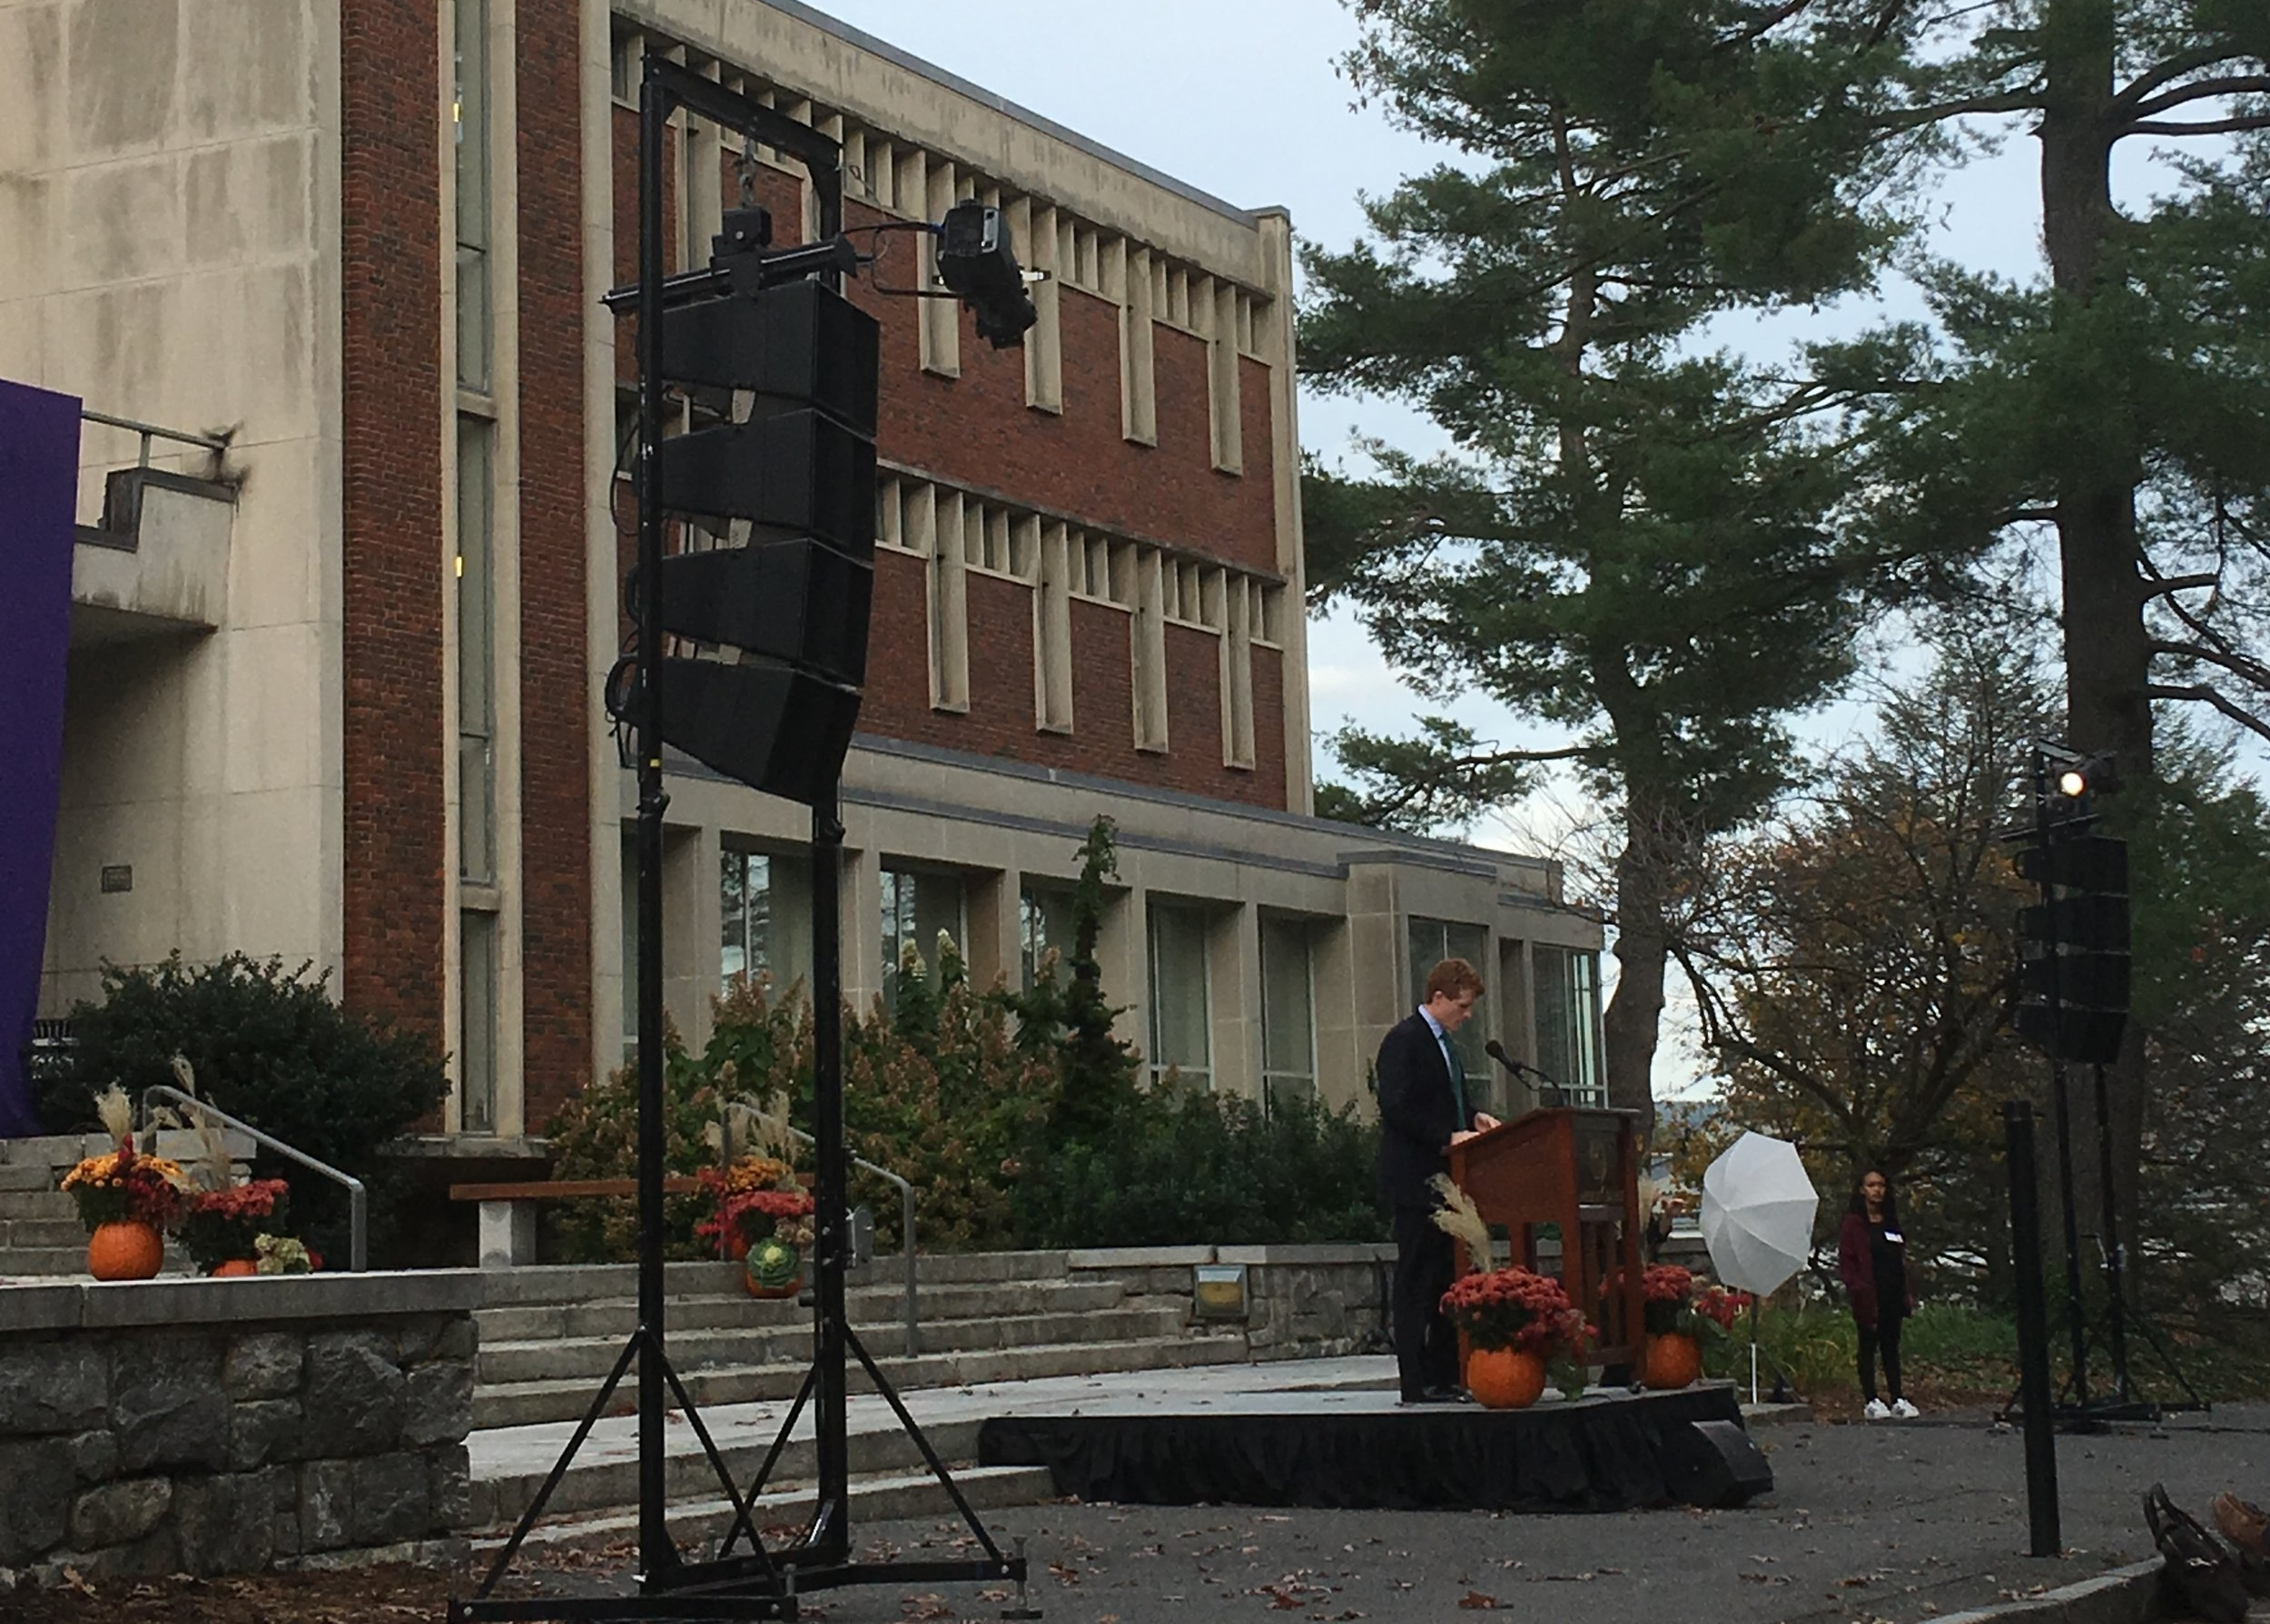 Rep. Joe Kennedy speaking in front of Frost Library at Amherst College.